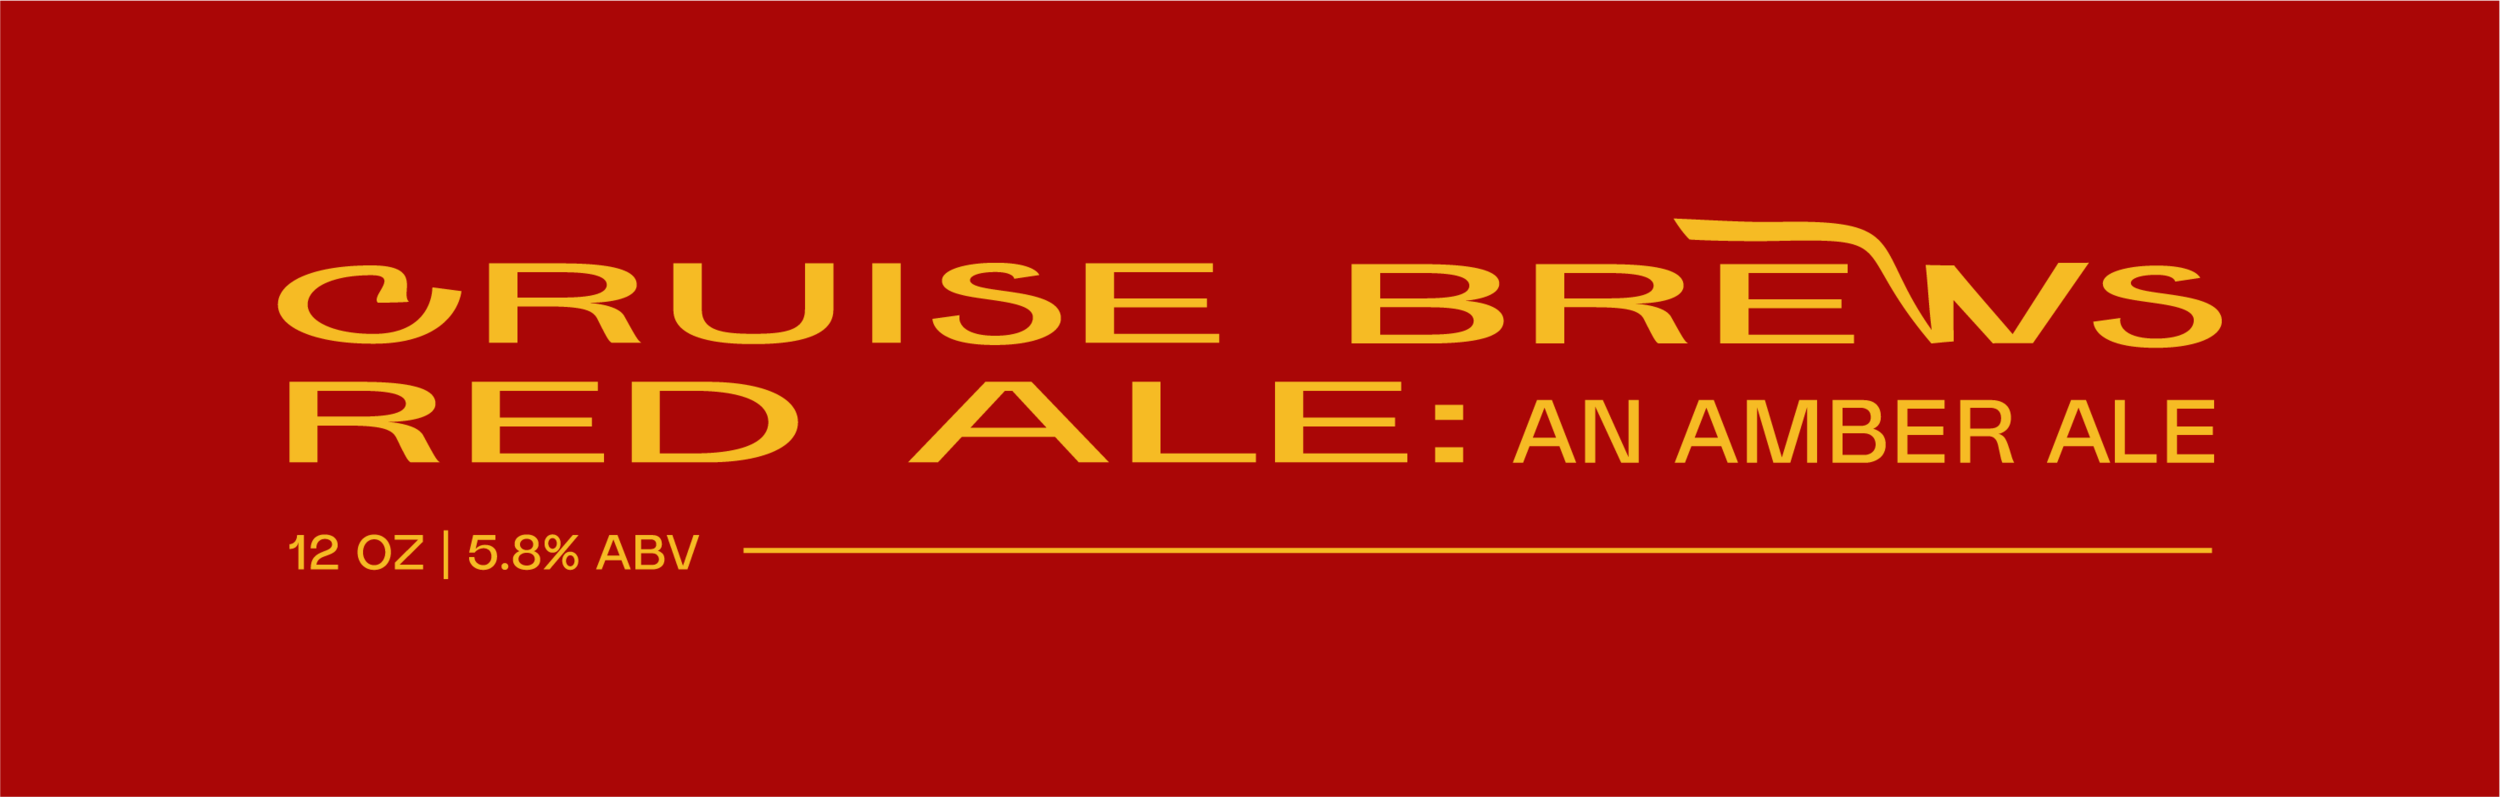 Cruise Brews The Label.png